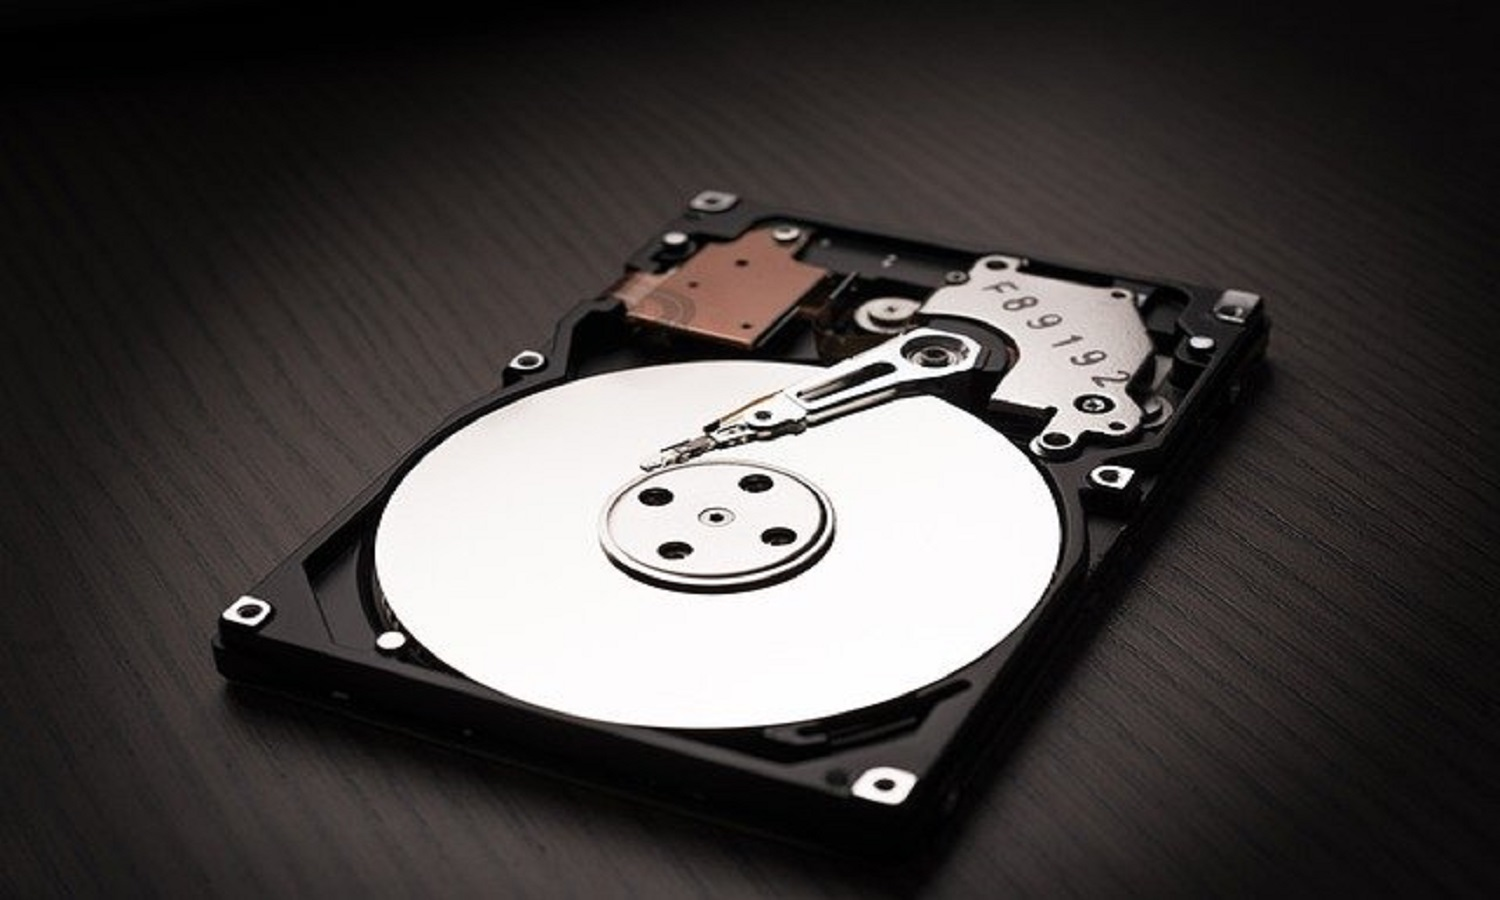 How Does a Hard Drive Works?